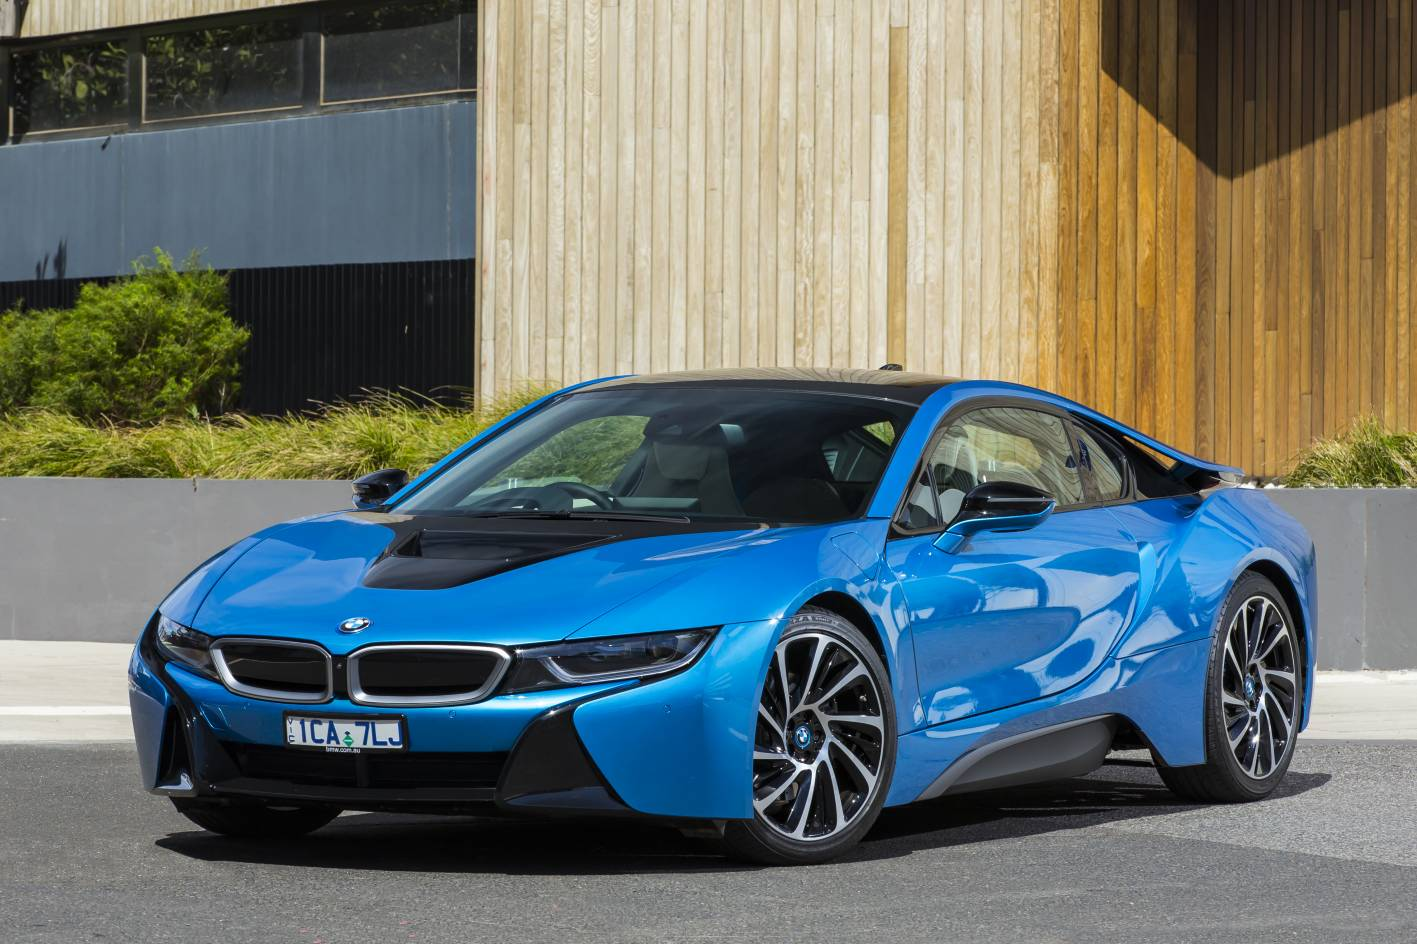 bmw cars news bmw i8 sports car on sale in australia from 299k. Black Bedroom Furniture Sets. Home Design Ideas